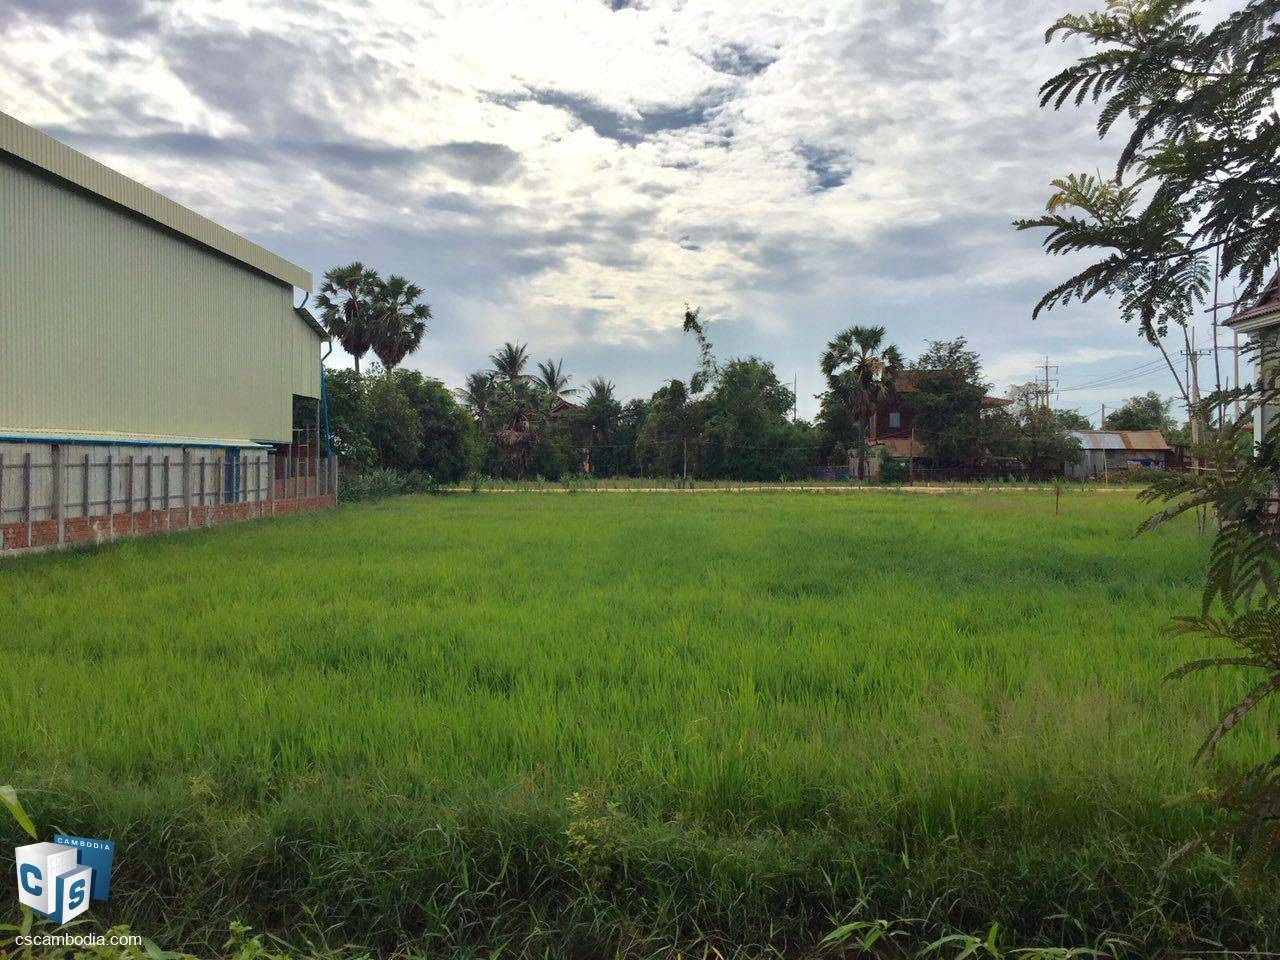 748 Sq M Land-For Sale-Takong Village, Sambor Commune, Siem Reap Province